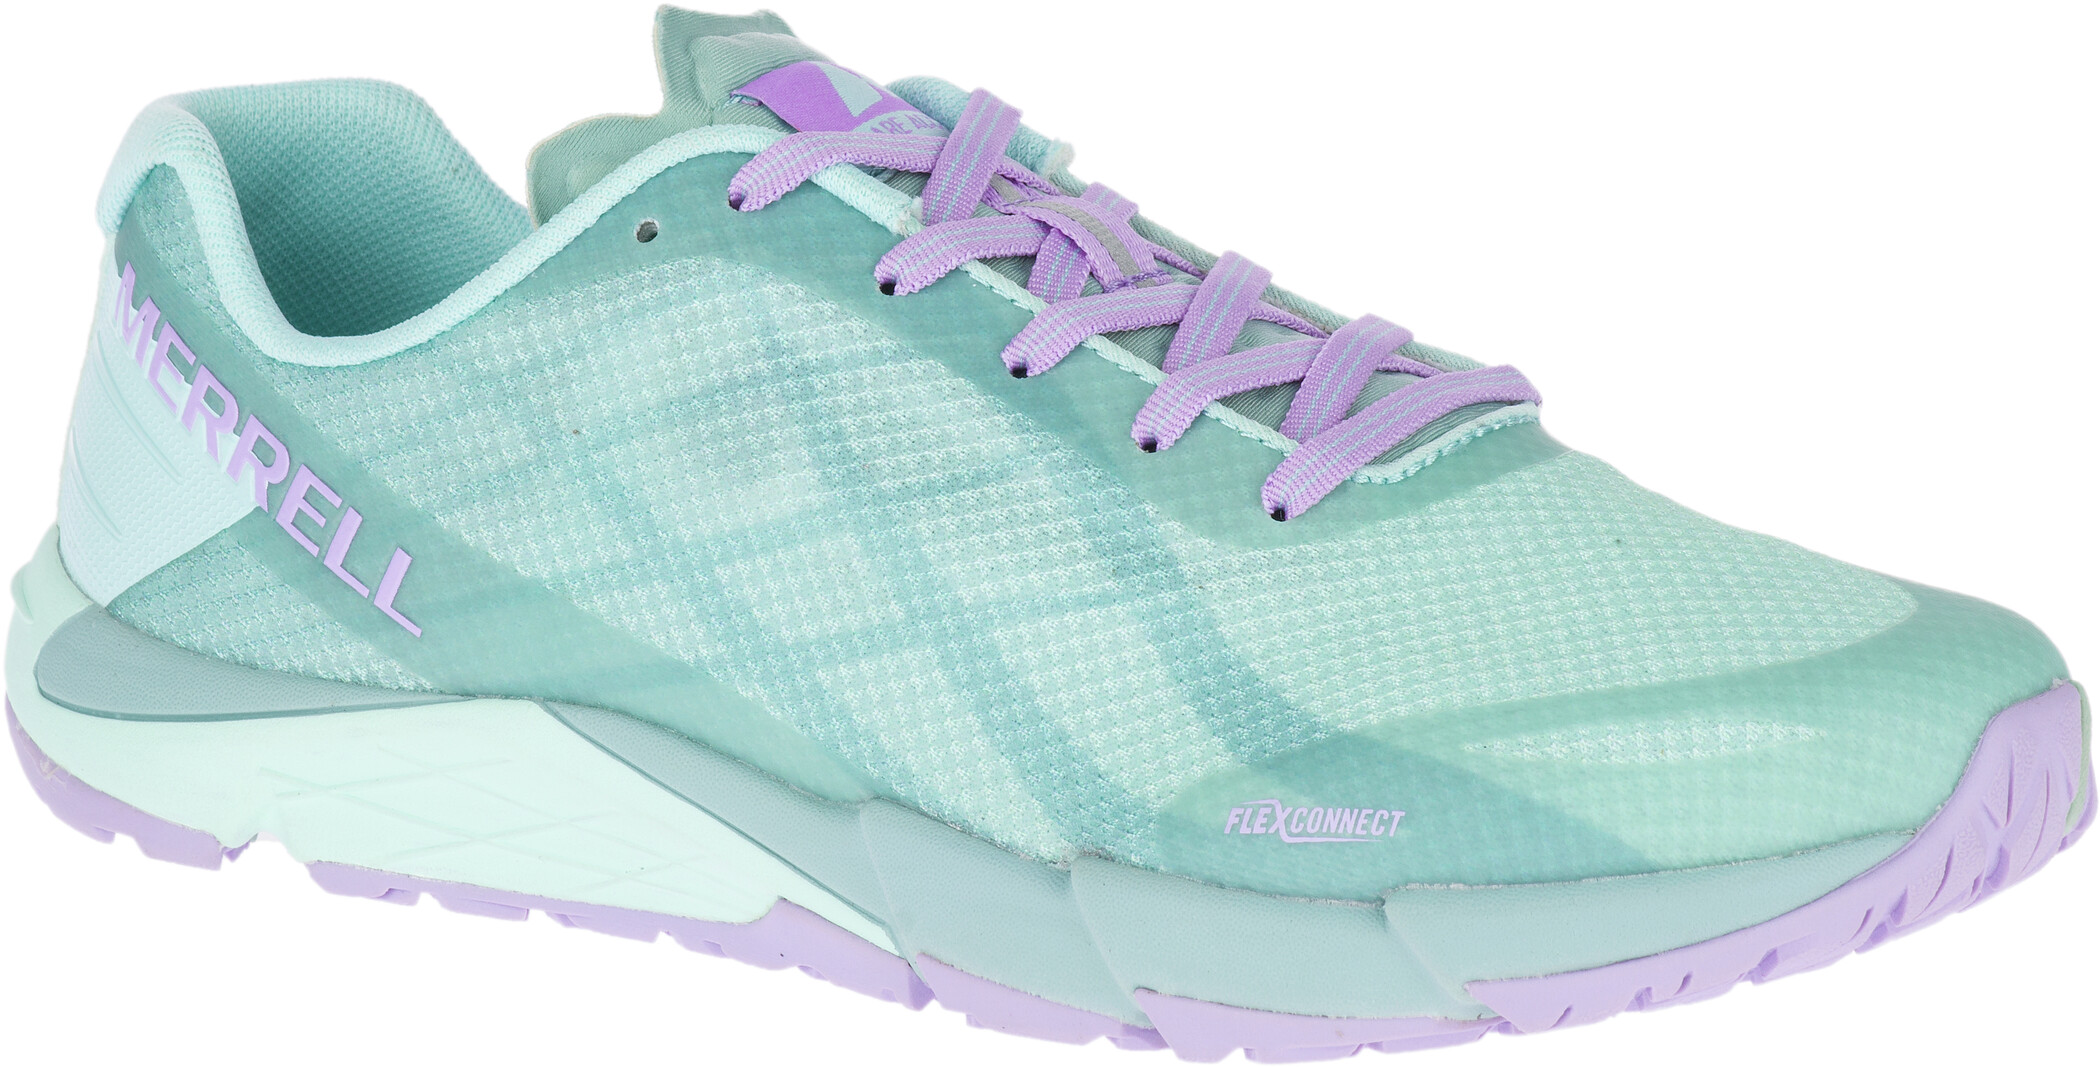 Merrell Bare Access Flex Sko Damer, aqua | Running shoes